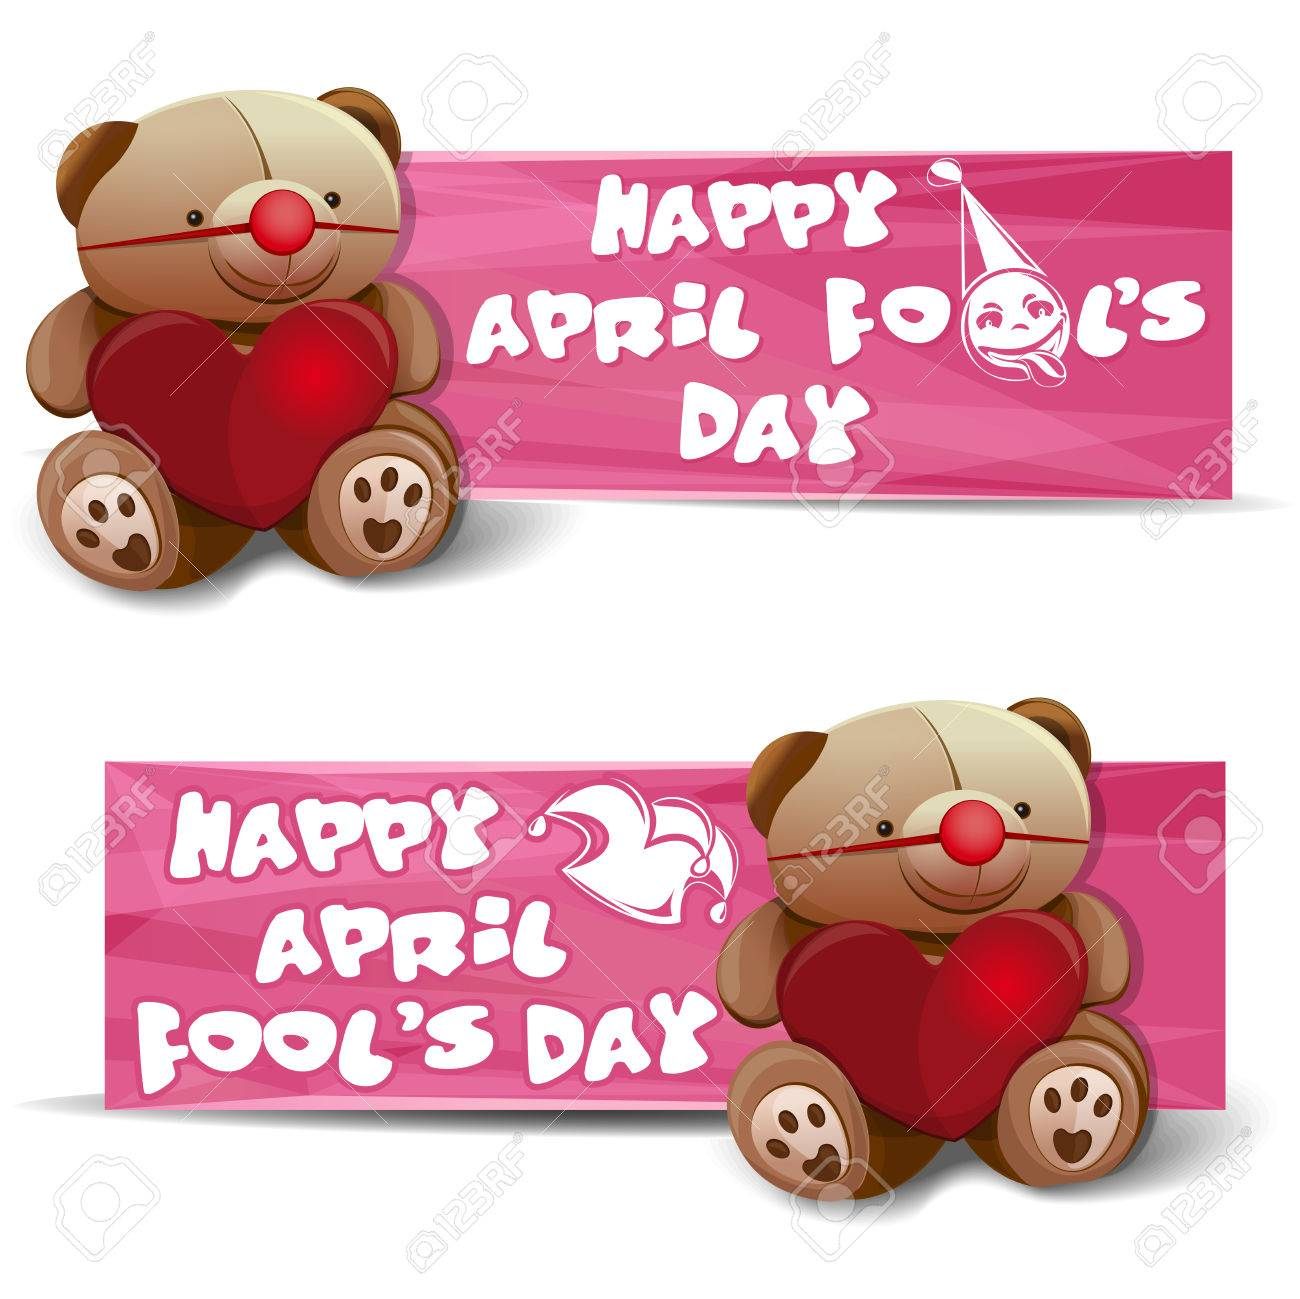 Happy april fools day set banners with a teddy bear heart happy april fools day set banners with a teddy bear heart fools cap m4hsunfo